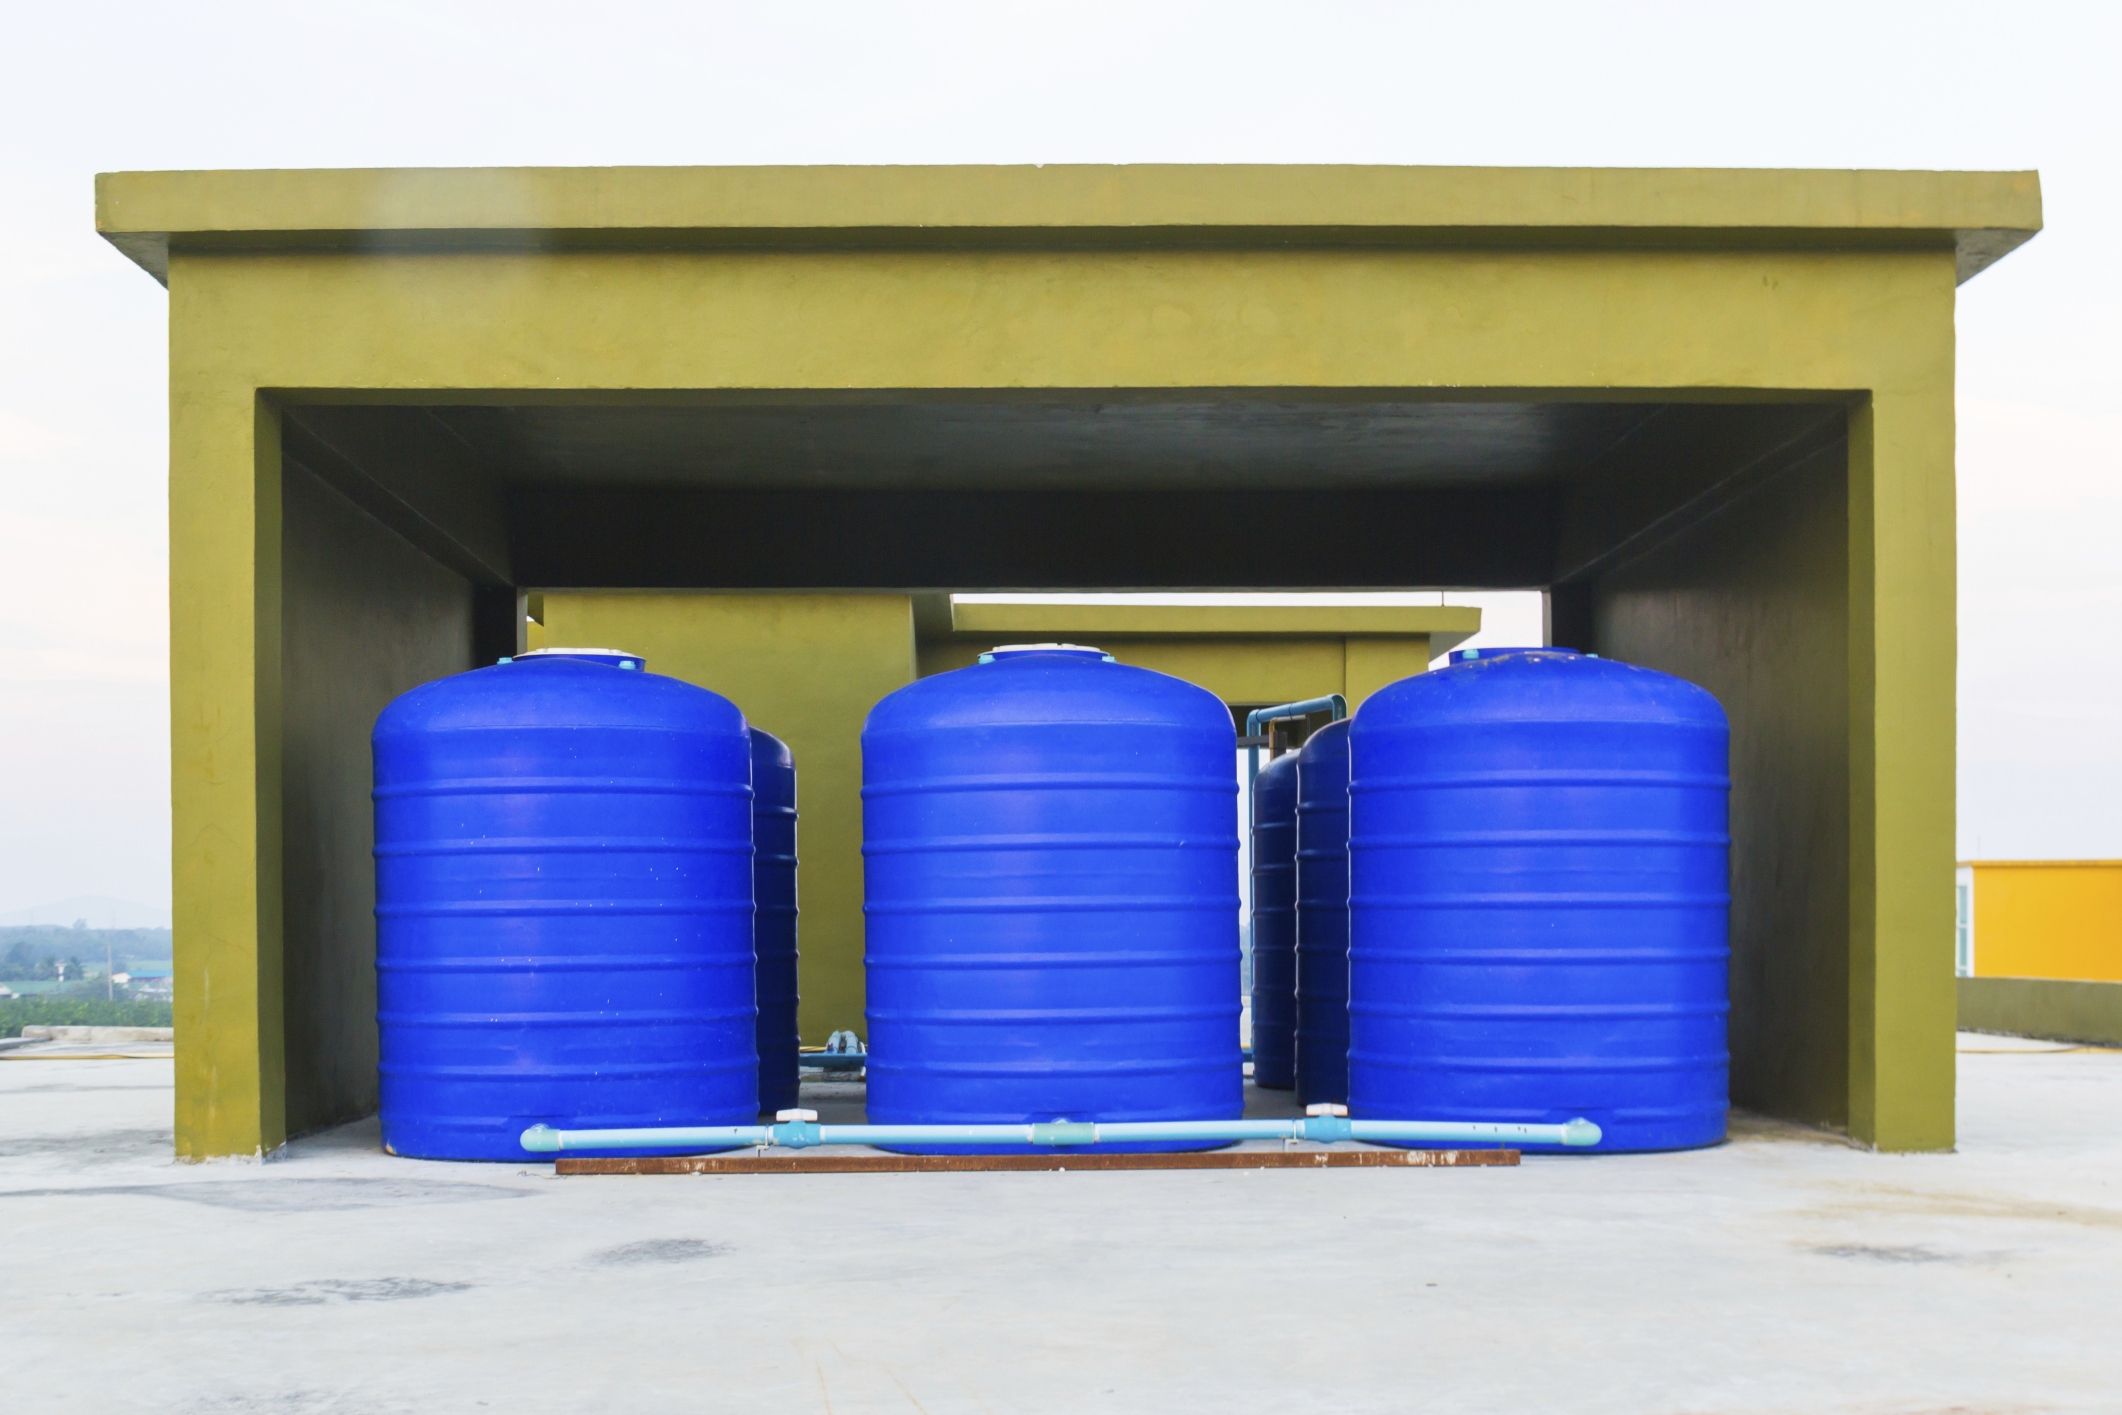 The pros and cons of different rainwater harvesting for Rainwater harvesting quotes